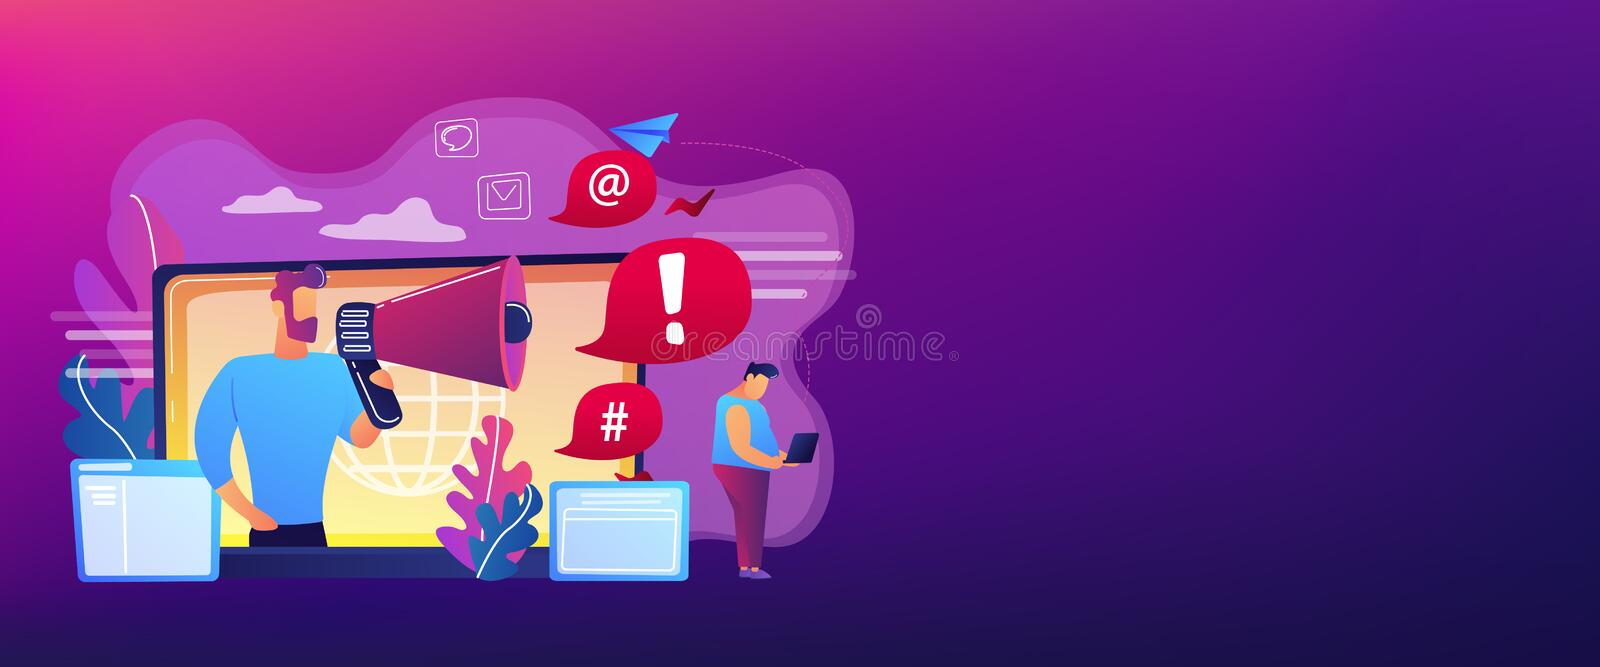 Internet shaming concept banner header. Target individual with laptop attacked online by user with megaphone. Internet shaming, online harassment, cyber crime stock illustration